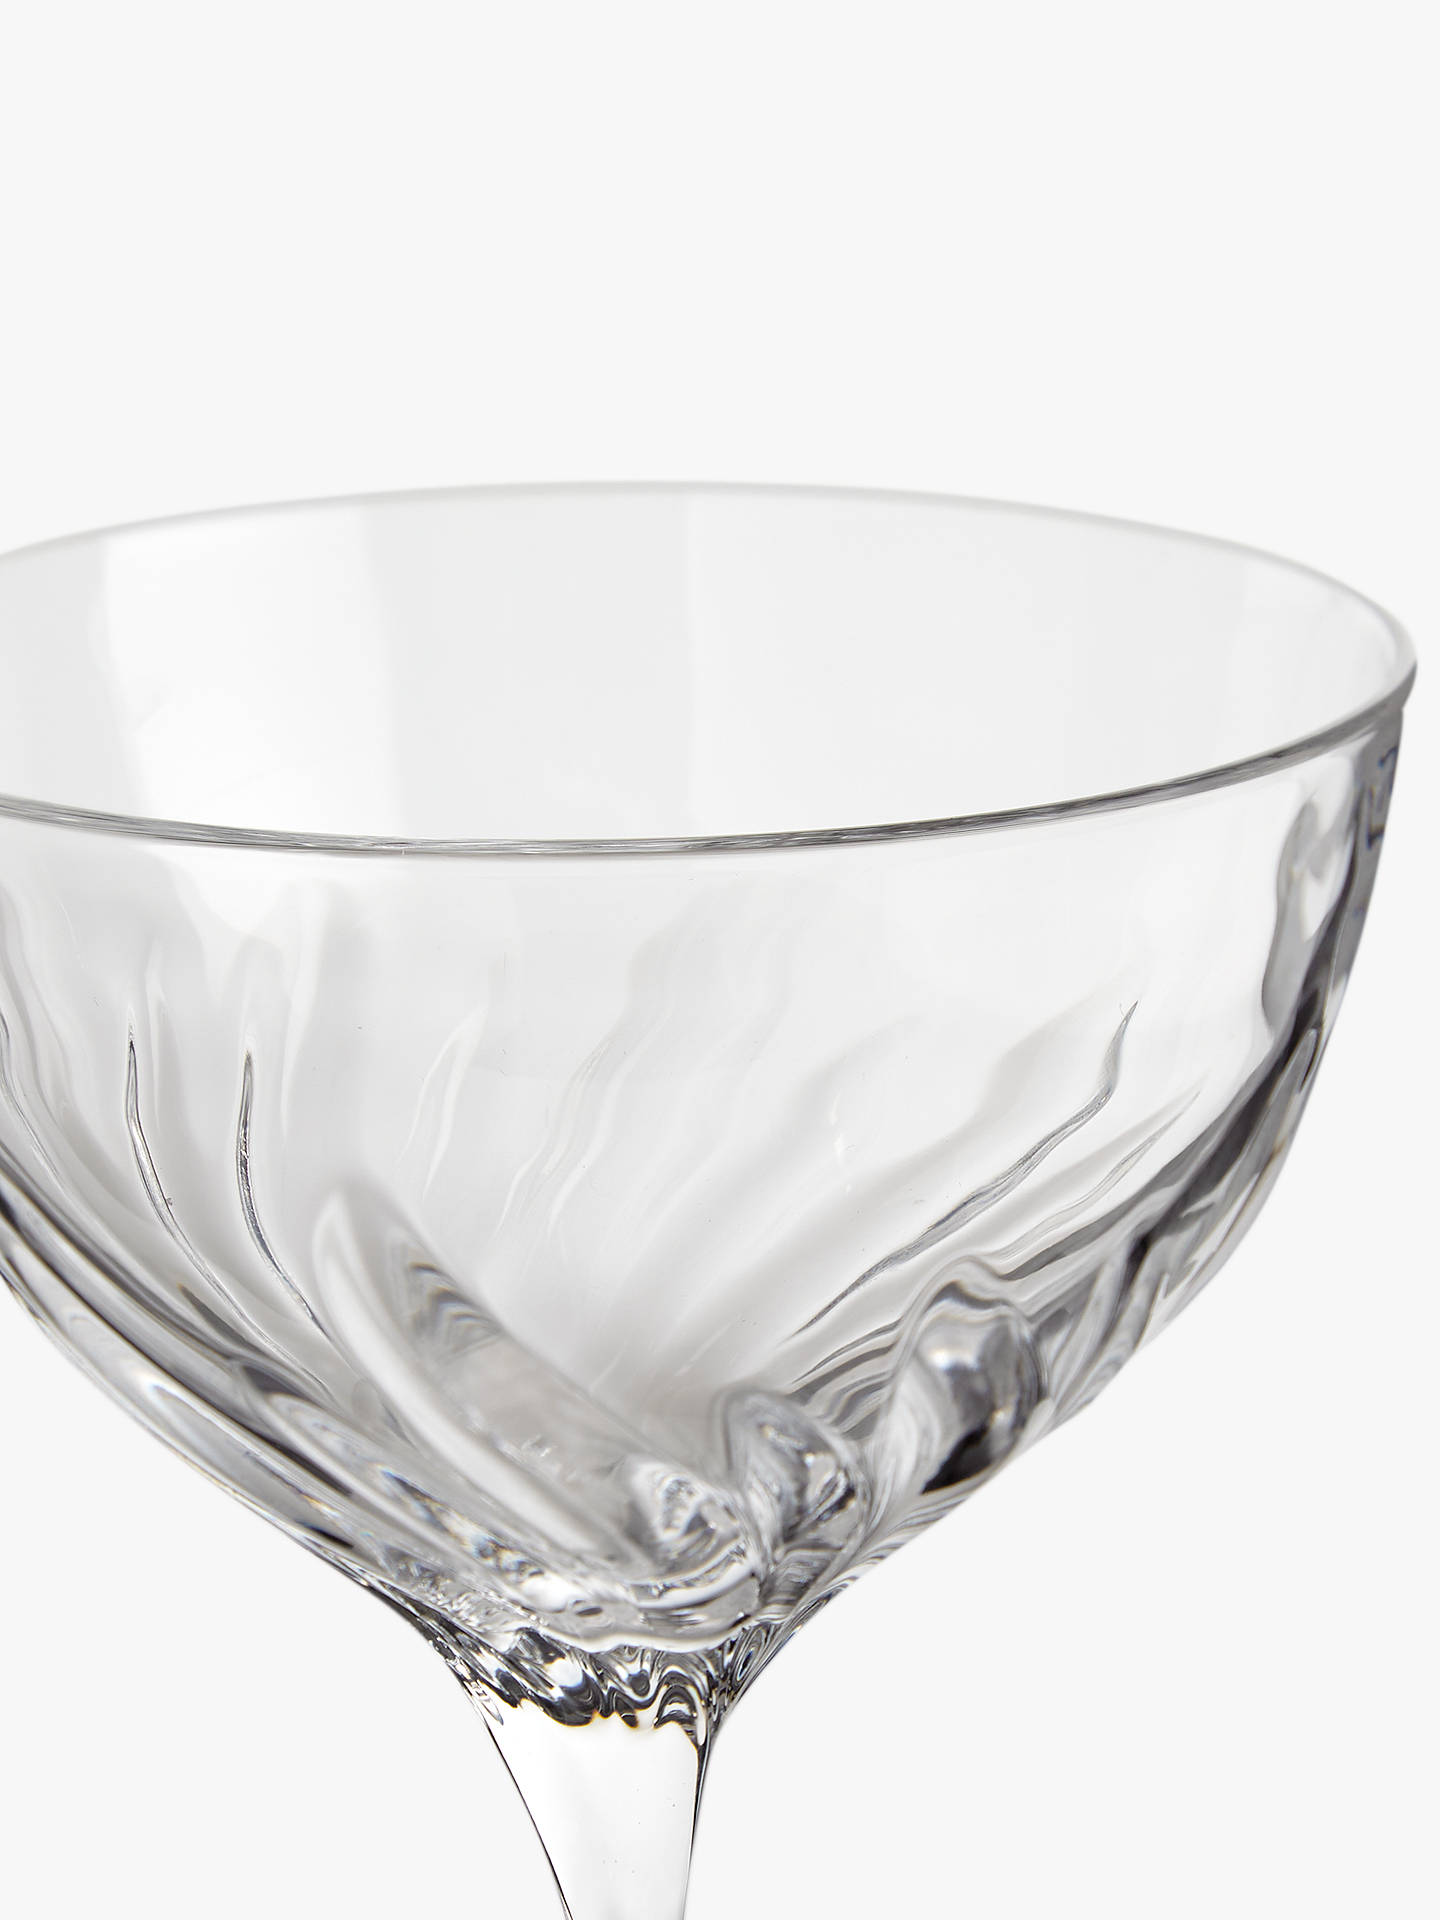 Buy John Lewis & Partners Cut Glass Champagne Saucers, 380ml, Set of 2, Clear Online at johnlewis.com